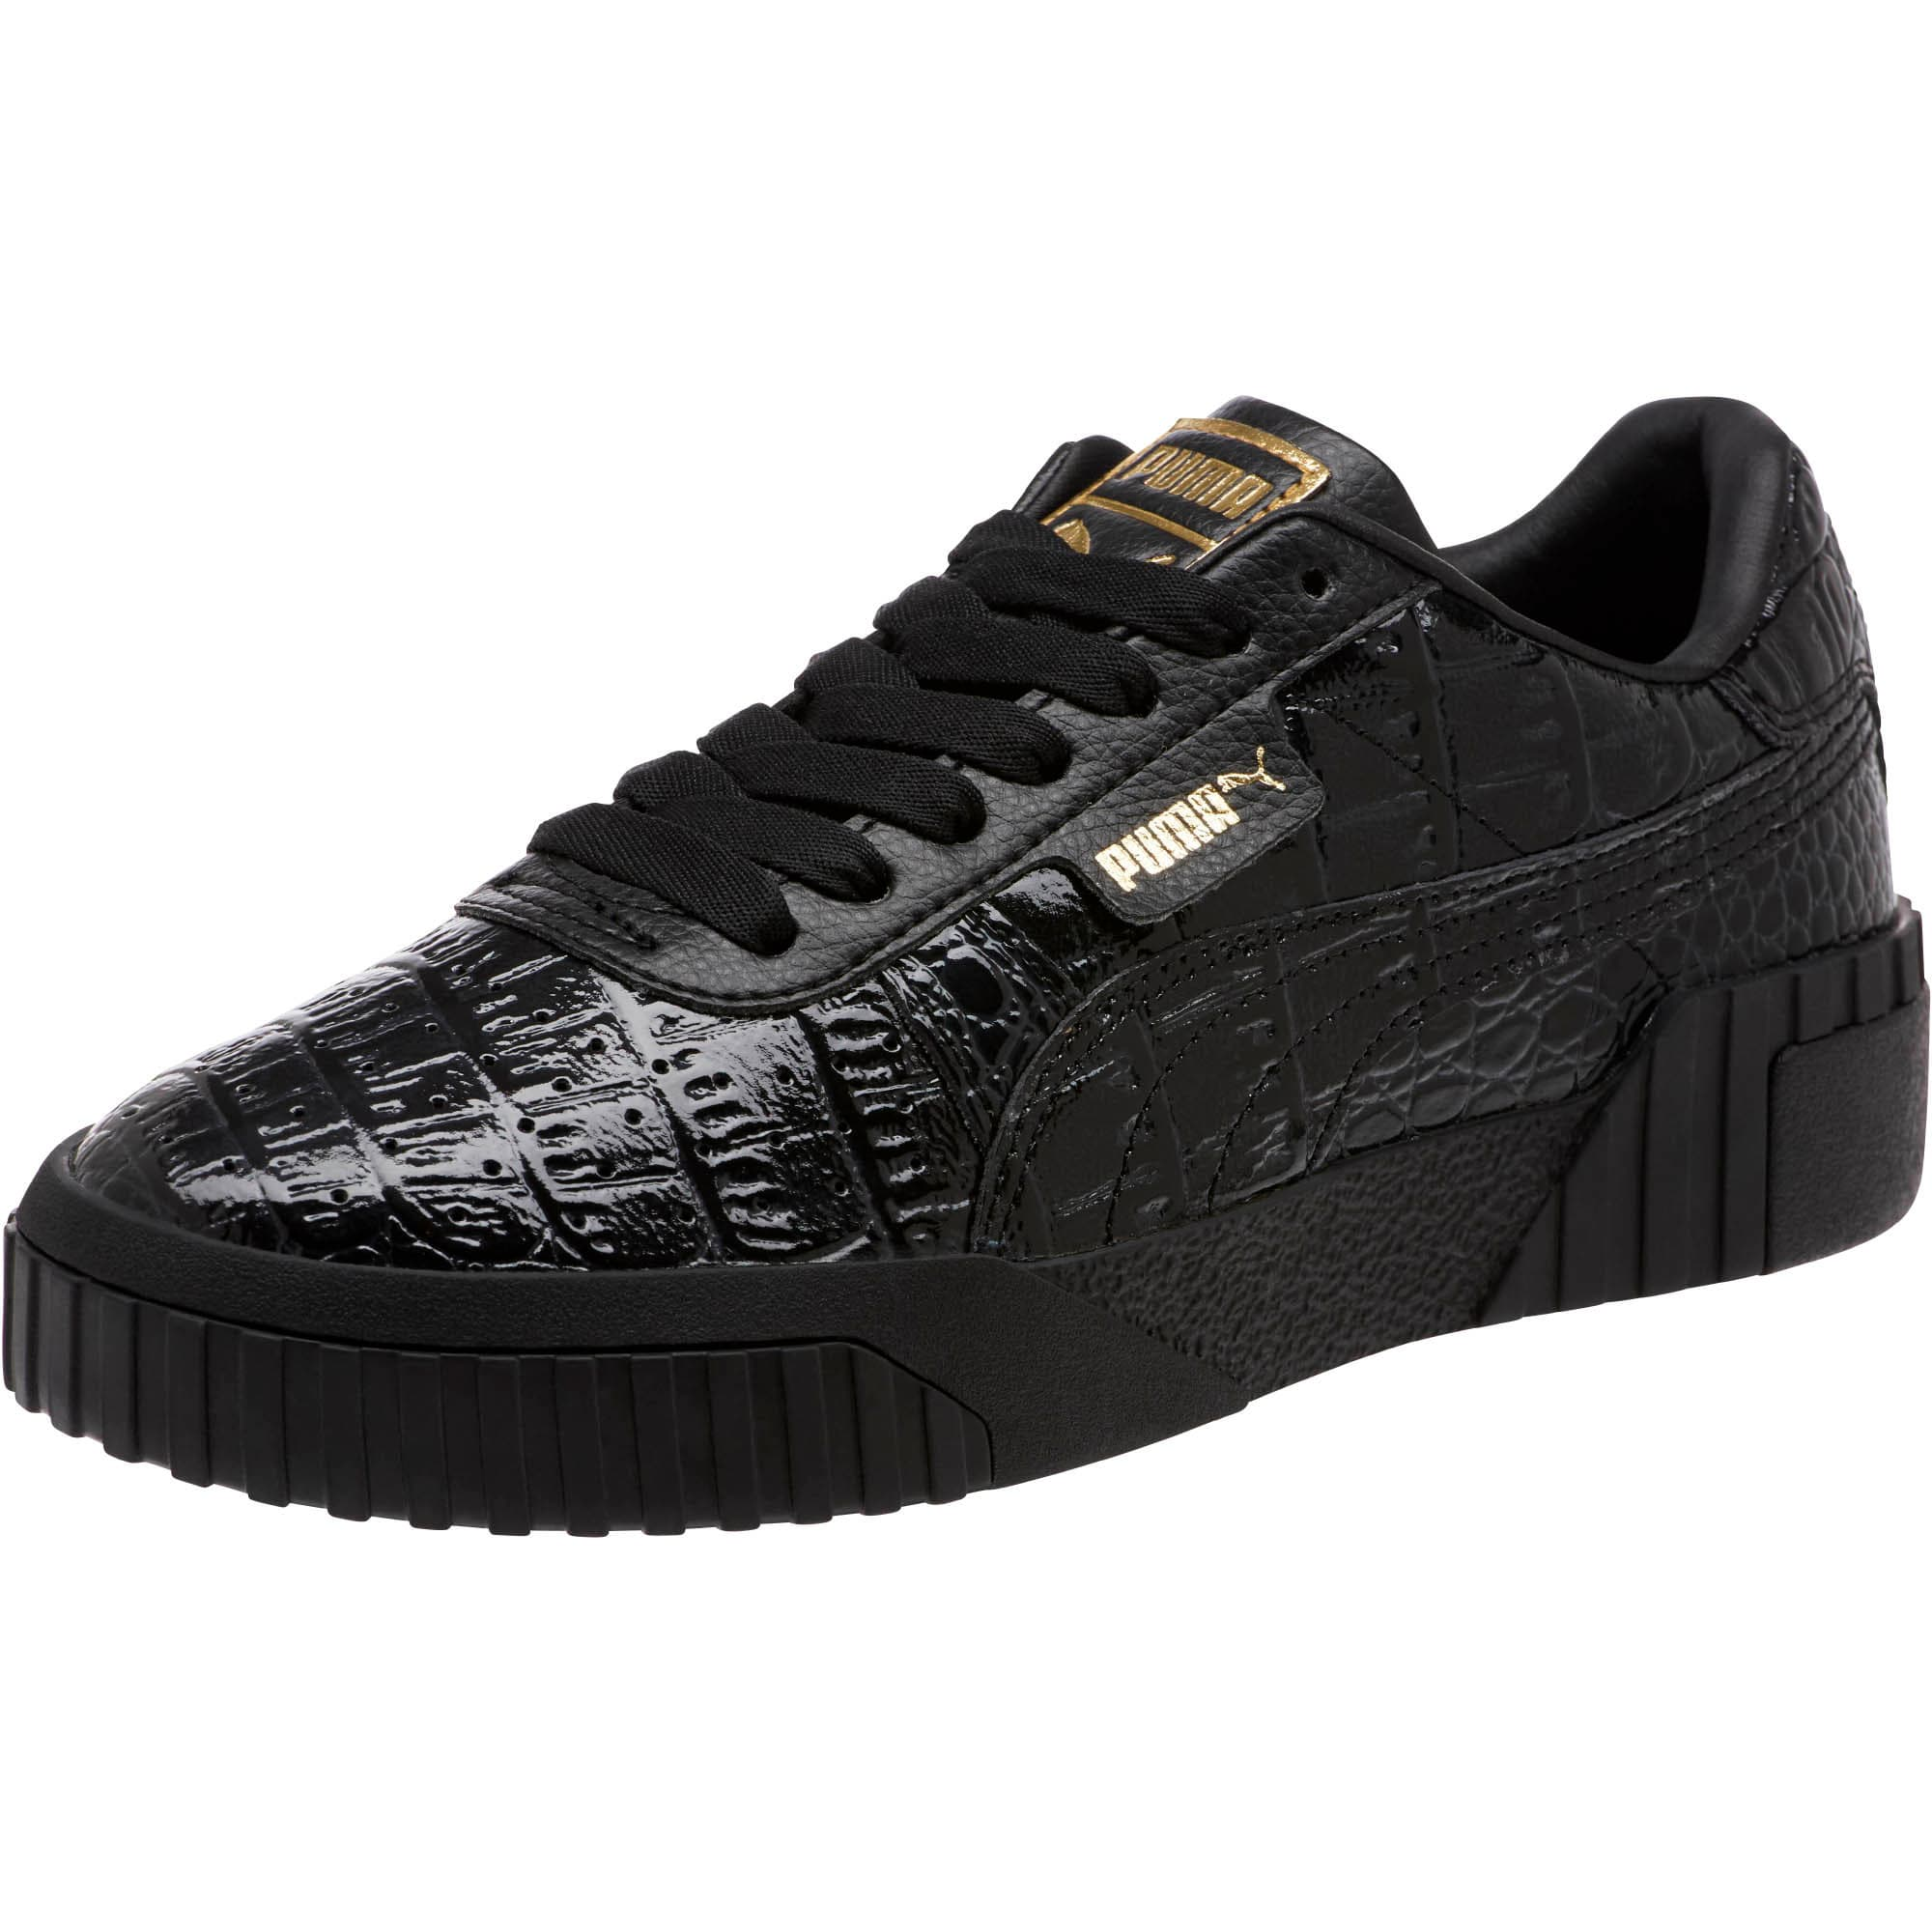 Thumbnail 1 of Cali Croc Women's Sneakers, Puma Black-Puma Black, medium